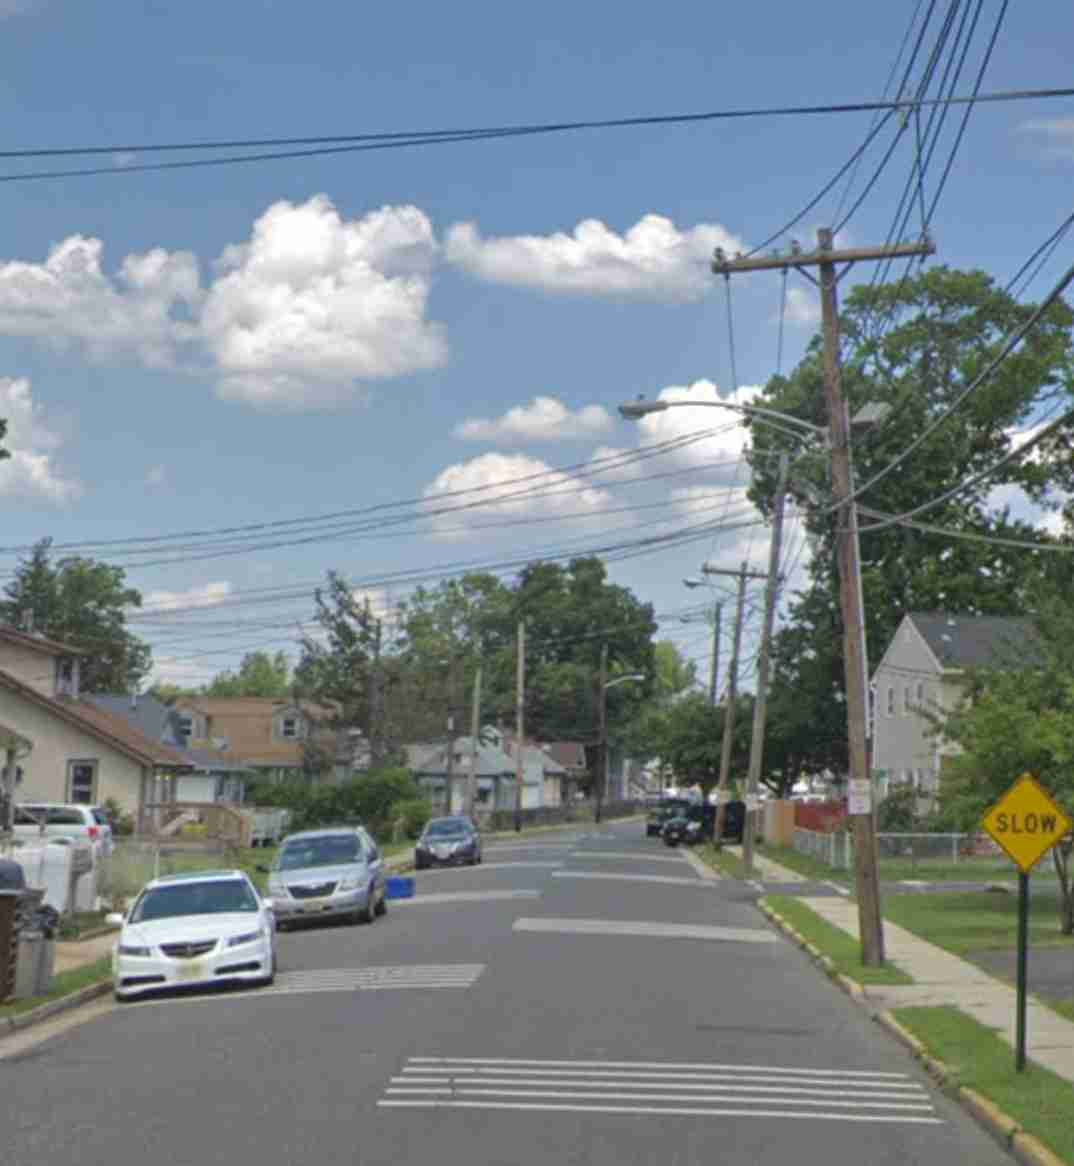 Keansburg elementary school forest ave joseph caruso kidnapping